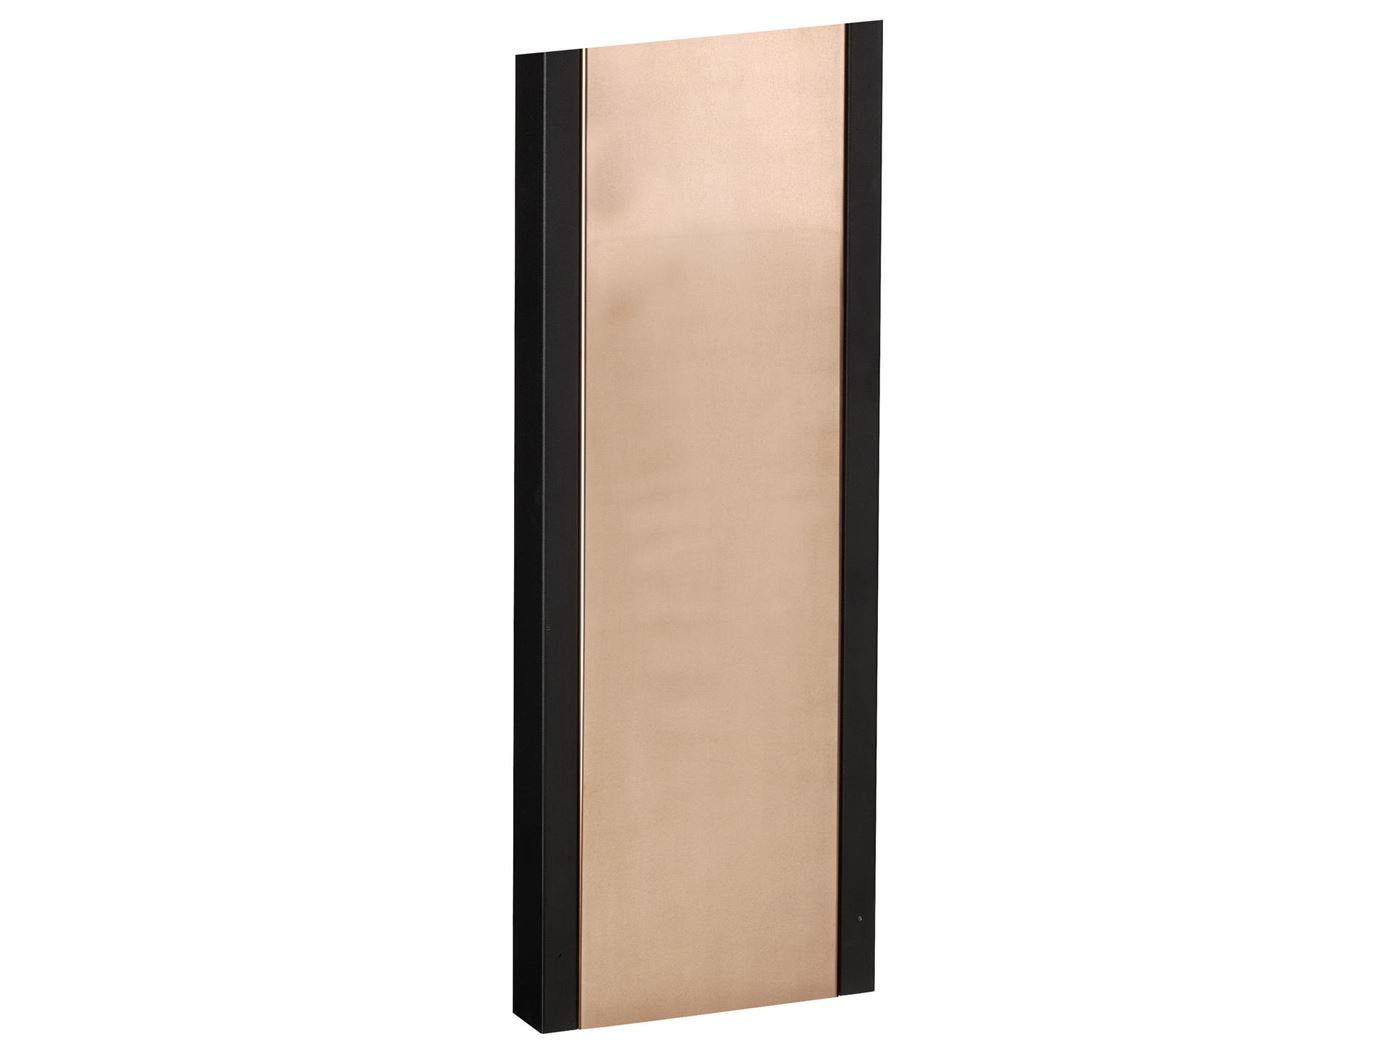 stand 1001 black with copper front